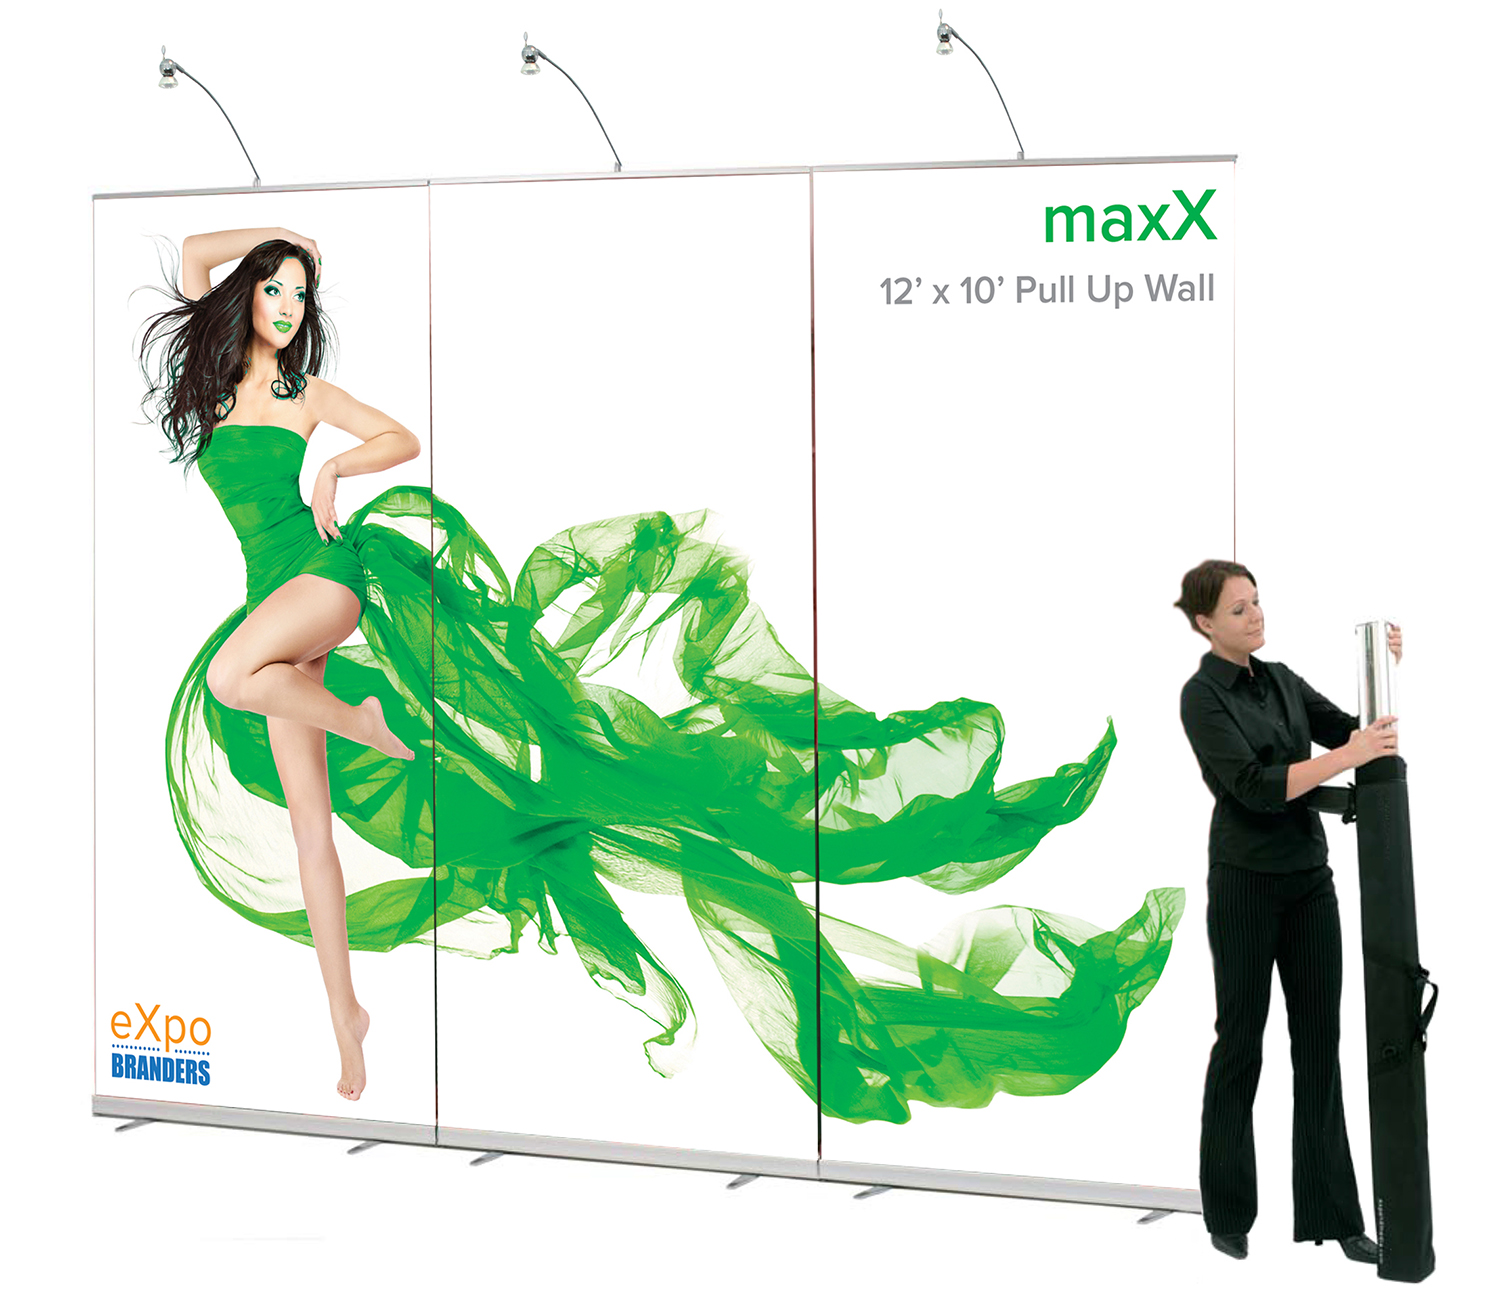 maxX-pull-up-banner-wall-12x10-arlington-va-dc